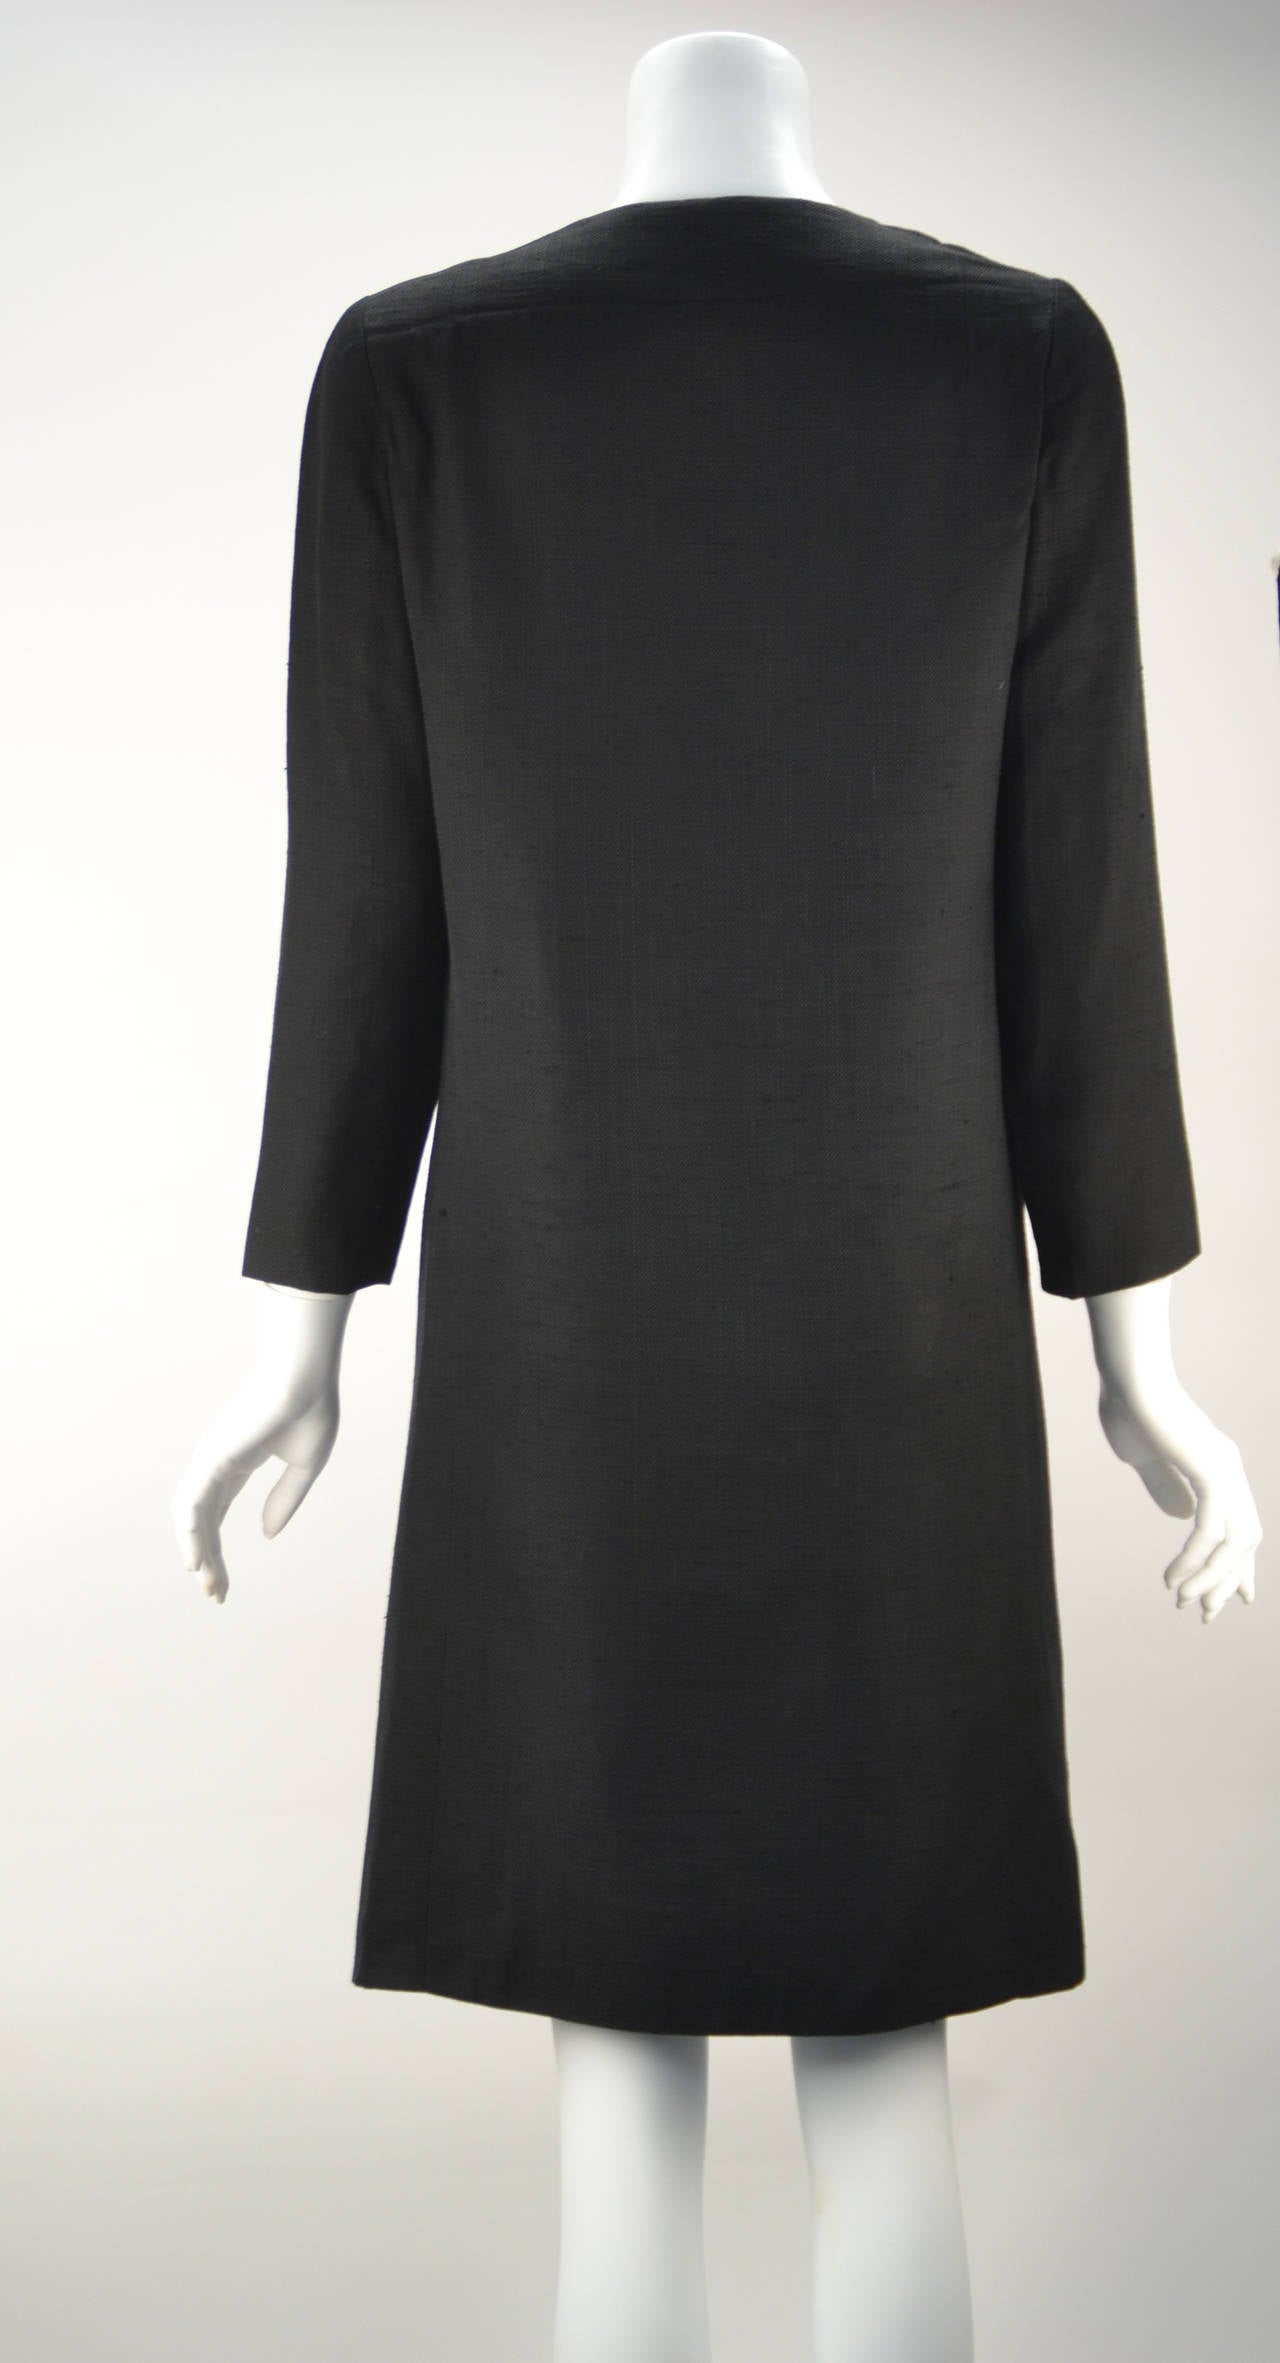 This 1960's Pierre Cardin dress is perfect for any occasion! Its brilliant design allows you to dress it up or down, wear it evening or night, or make it classic or mod!  Made of linger linen, the dress features a left side button closure and 2